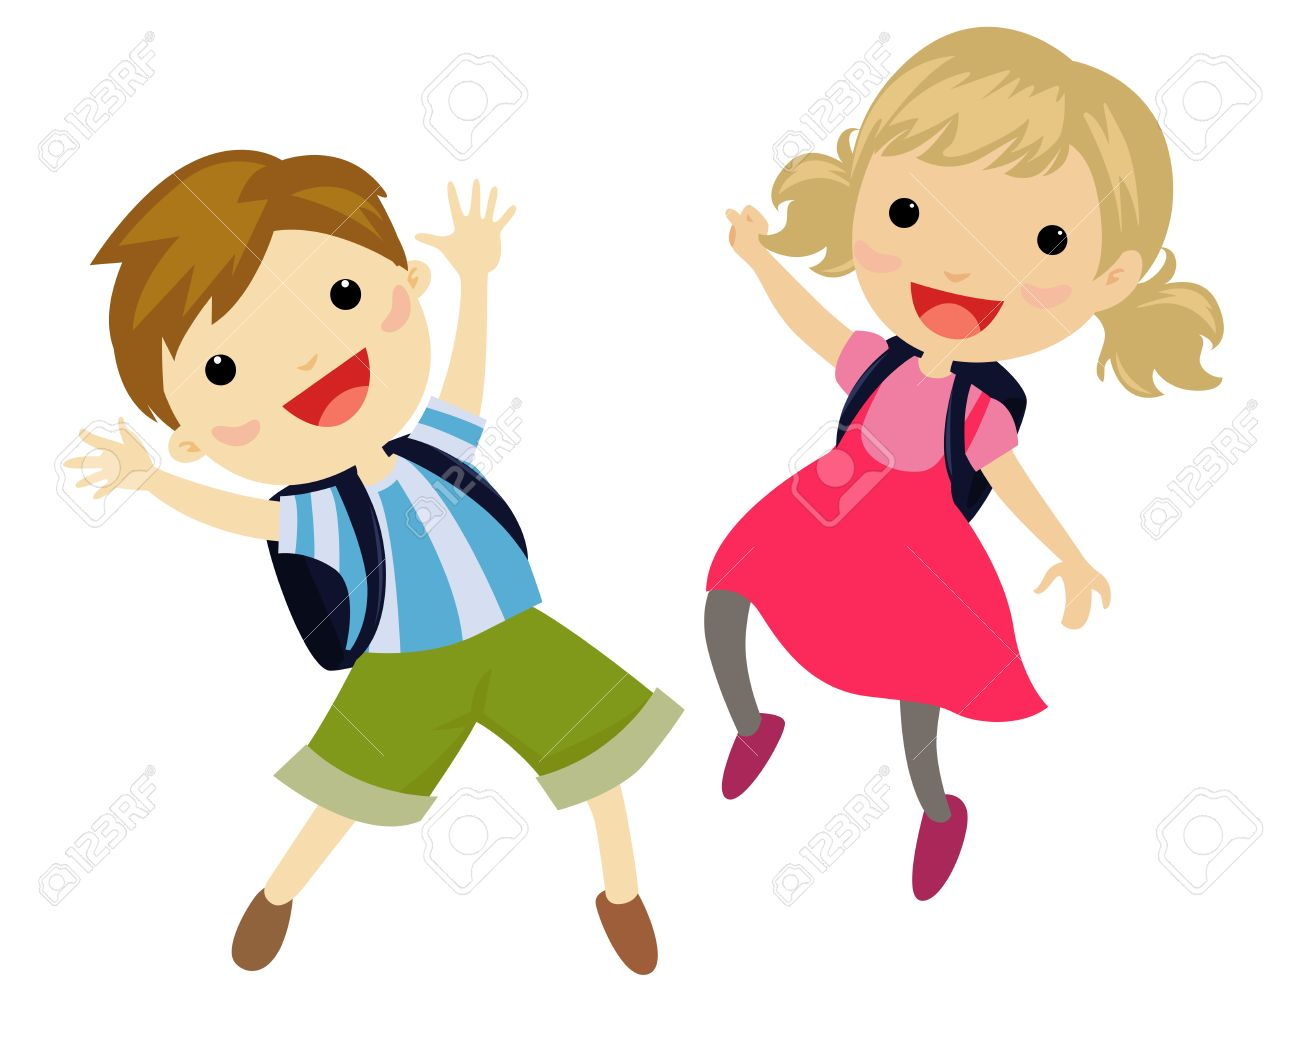 Kids jumping clipart banner library stock Kids jumping clipart 5 » Clipart Station banner library stock